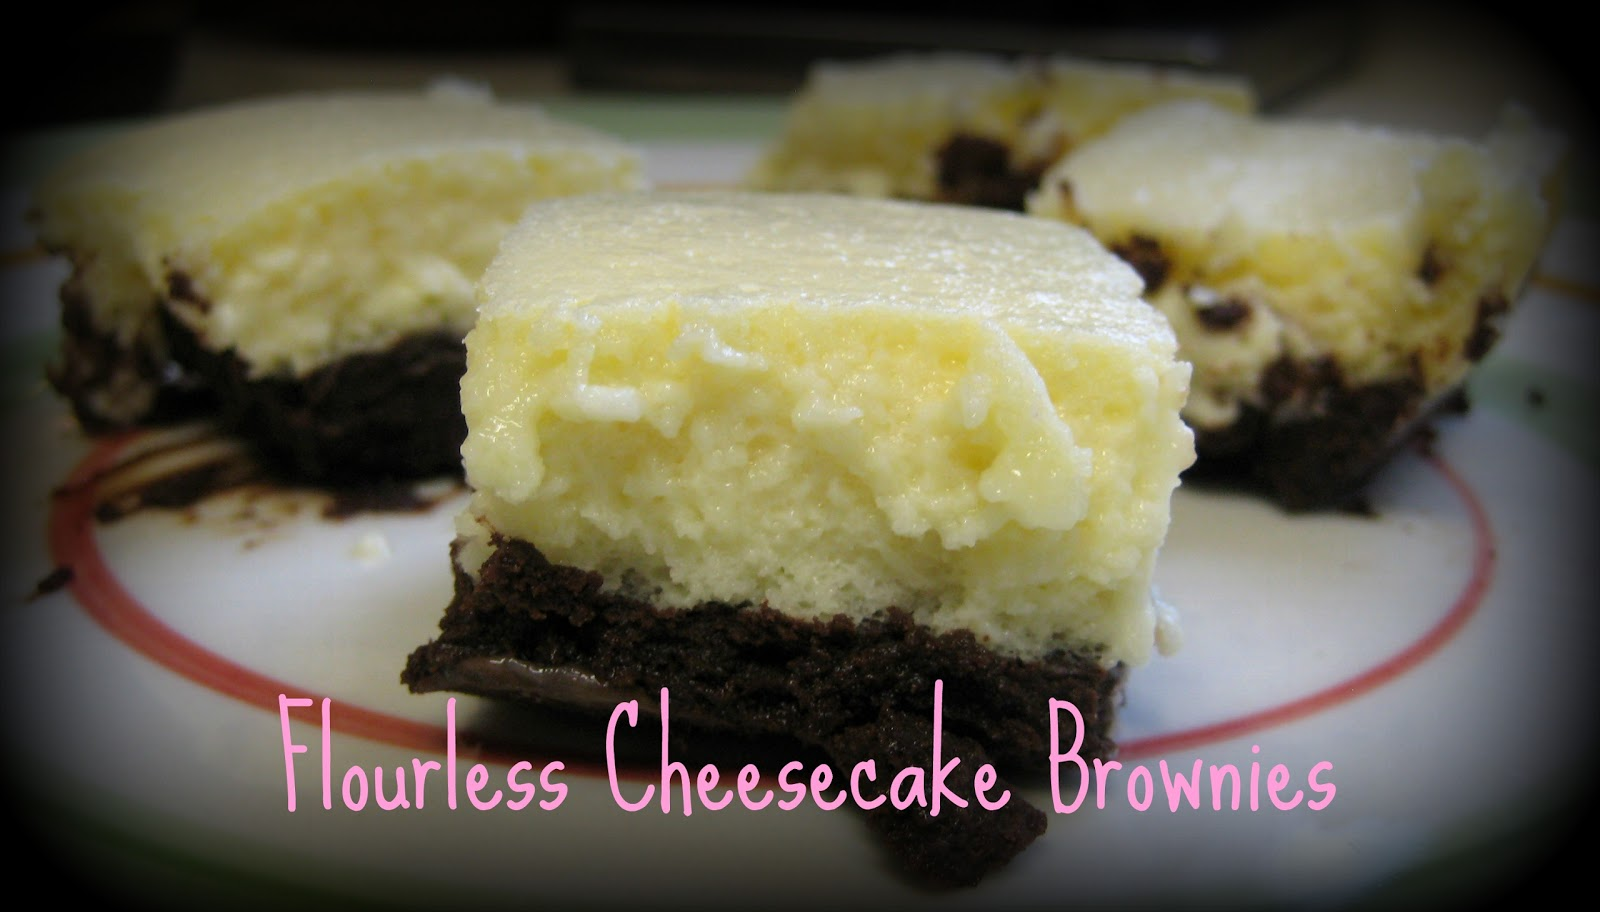 ... brownies skinny strawberry cheesecake brownies cheesecake brownies